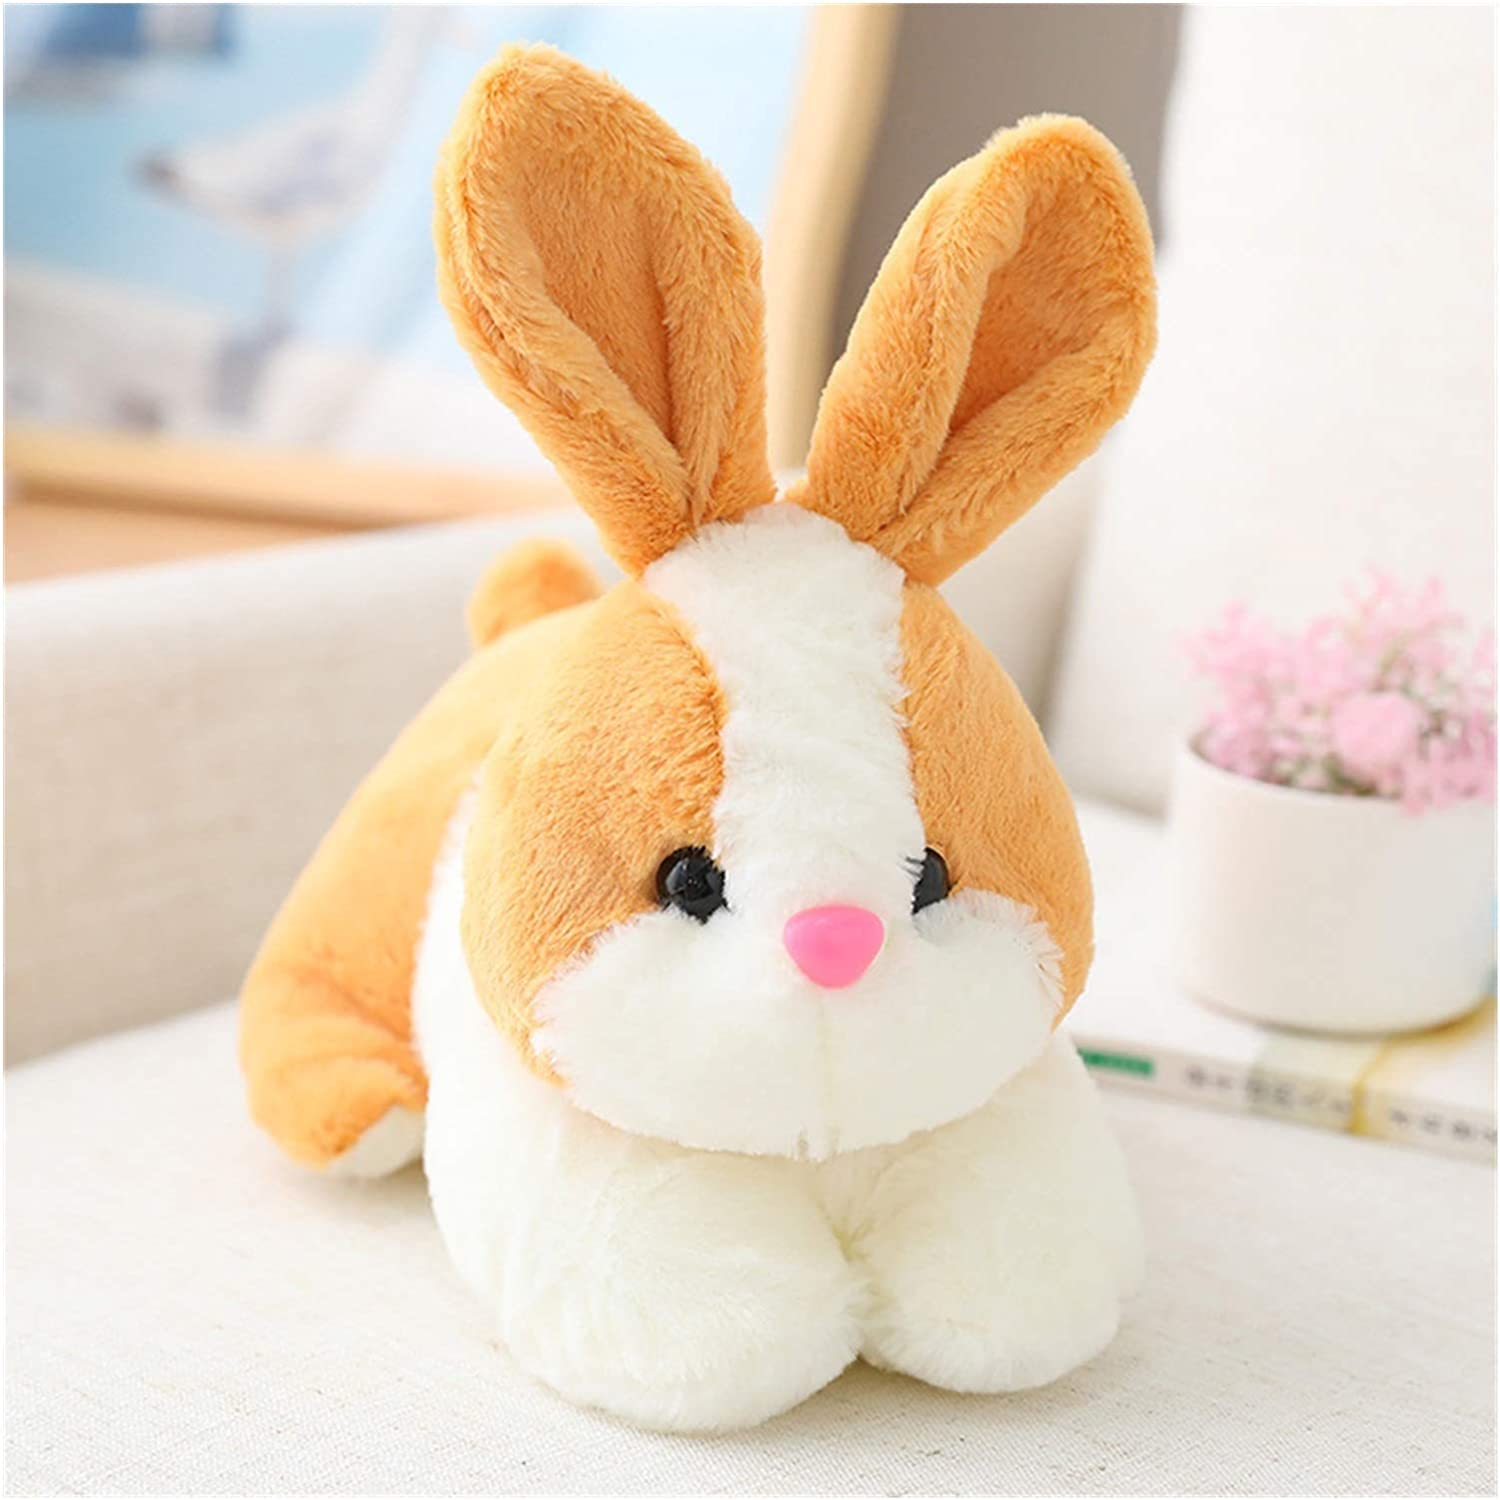 Selling and selling JUNMAIDZ Plush Toys Cheap sale Animals Bunny Cute Lovely Stuffed